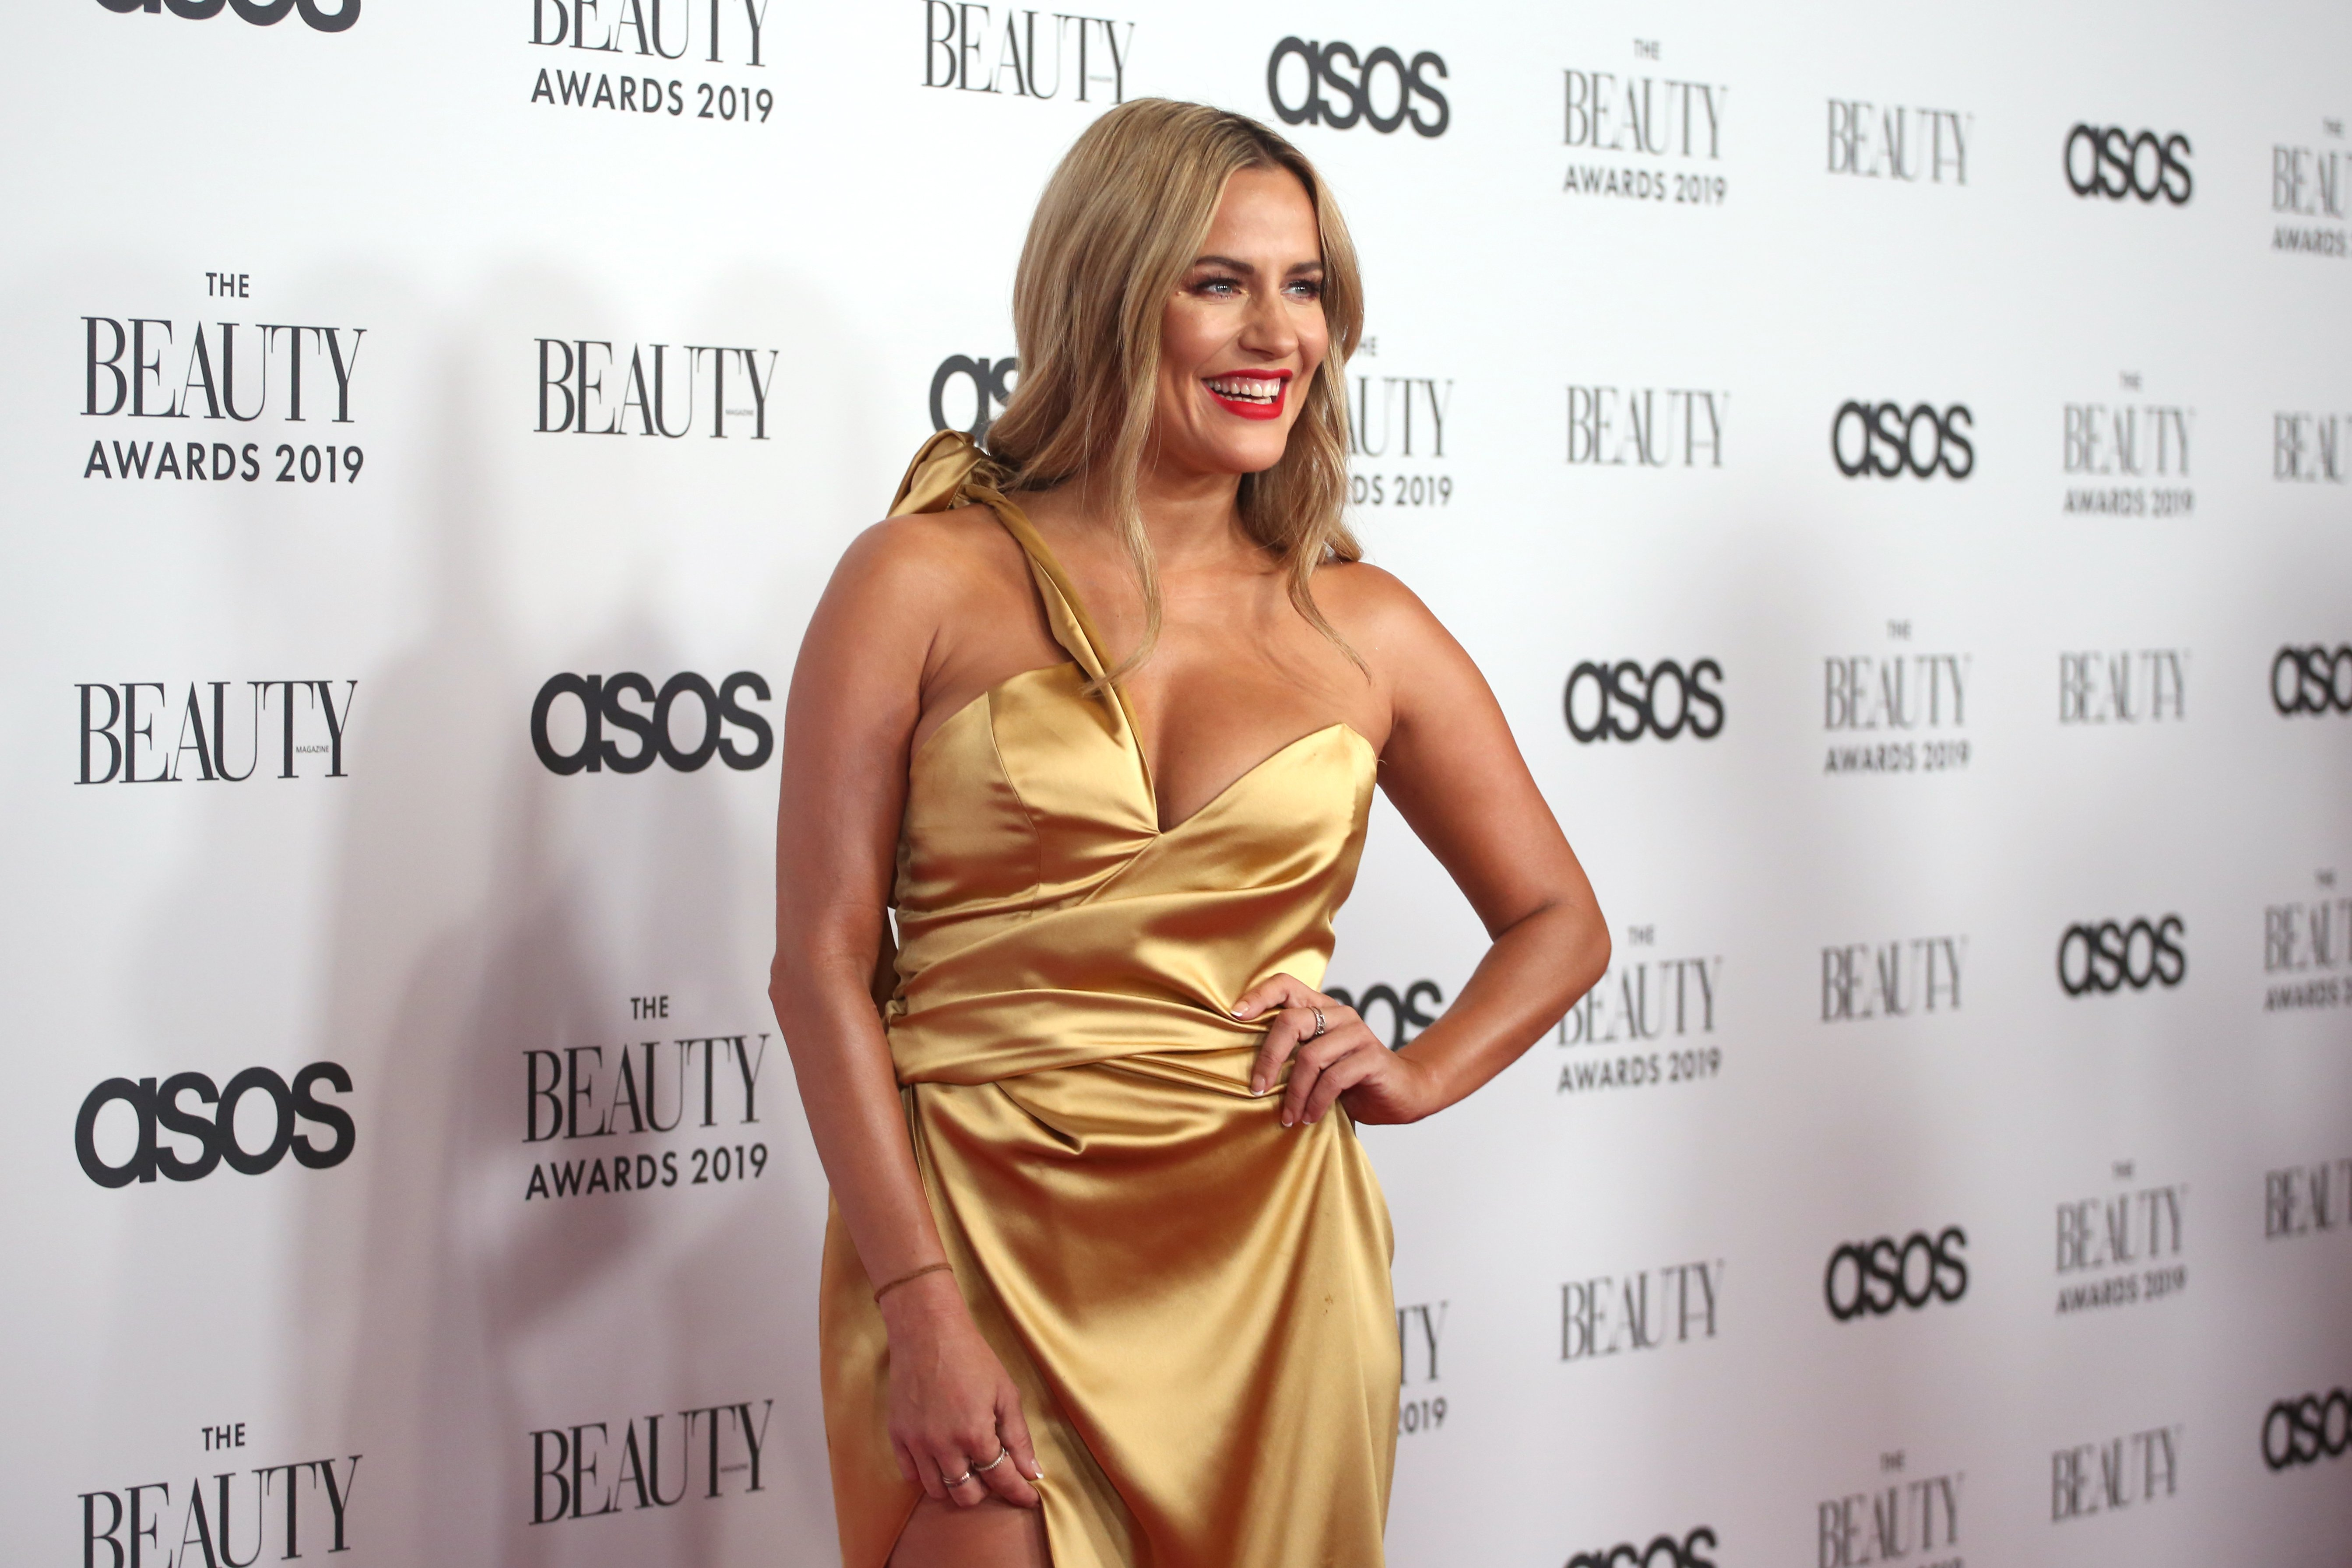 Caroline Flack attends The Beauty Awards 2019 on November 25, 2019 | Photo: GettyImages